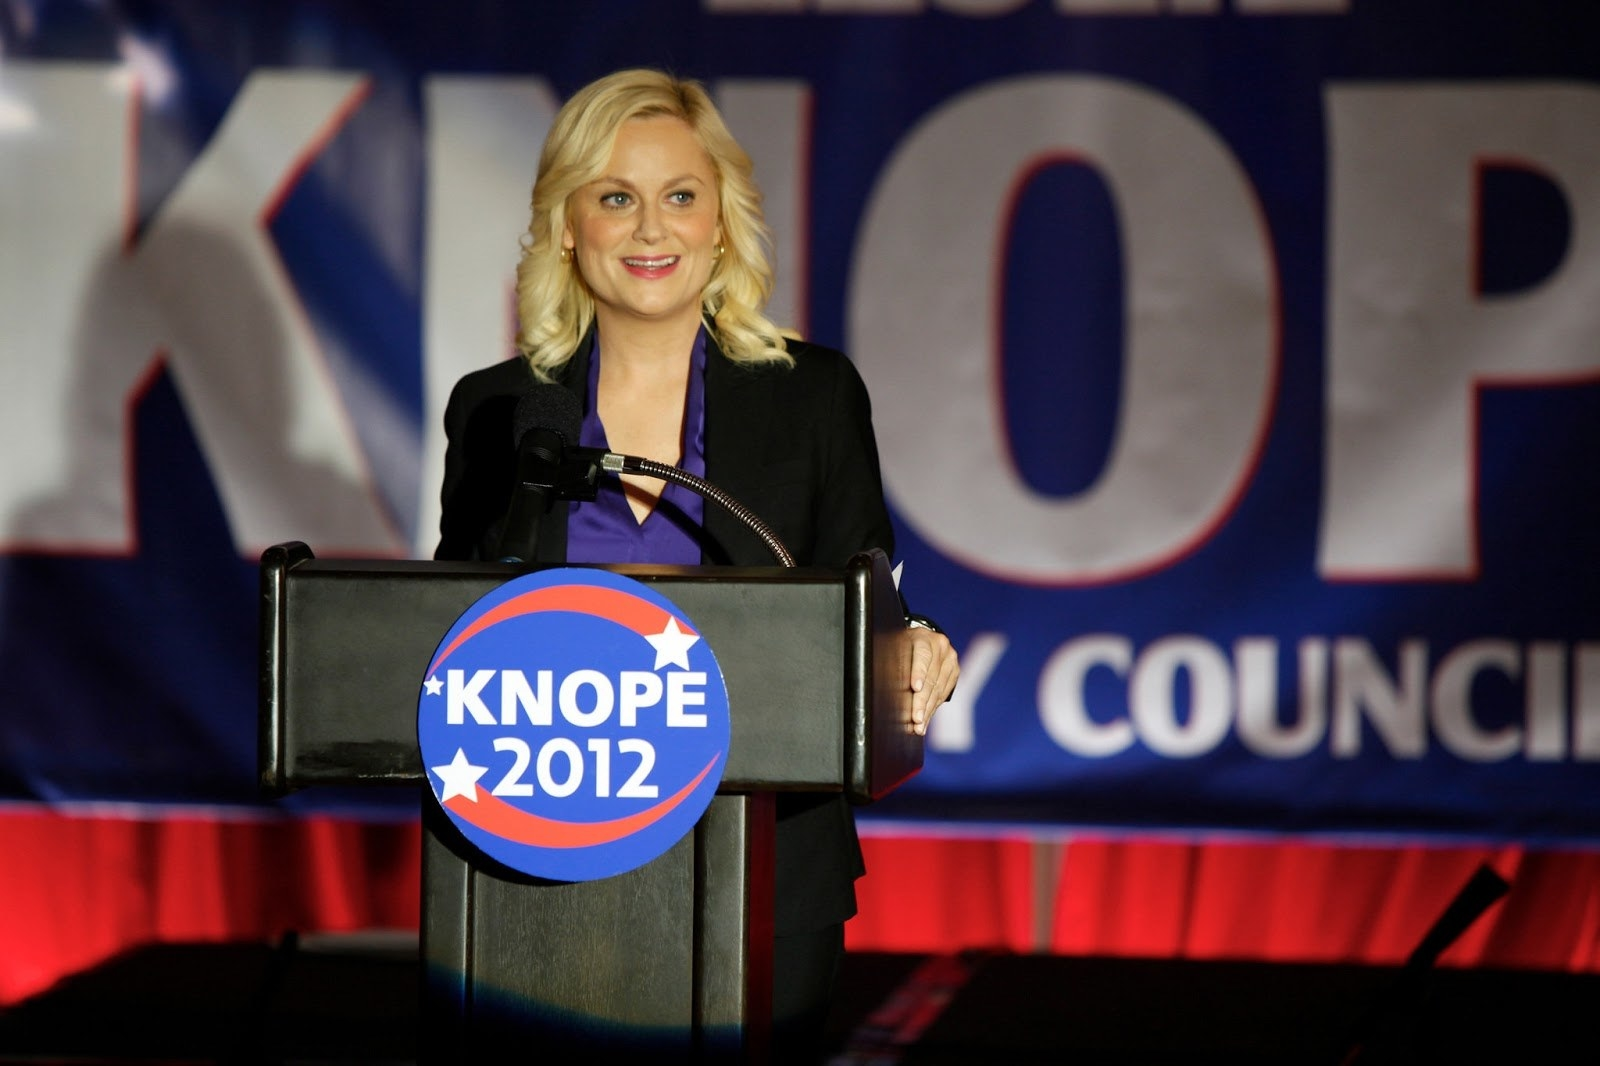 Leslie Knope Wrote A Letter To America After The Election